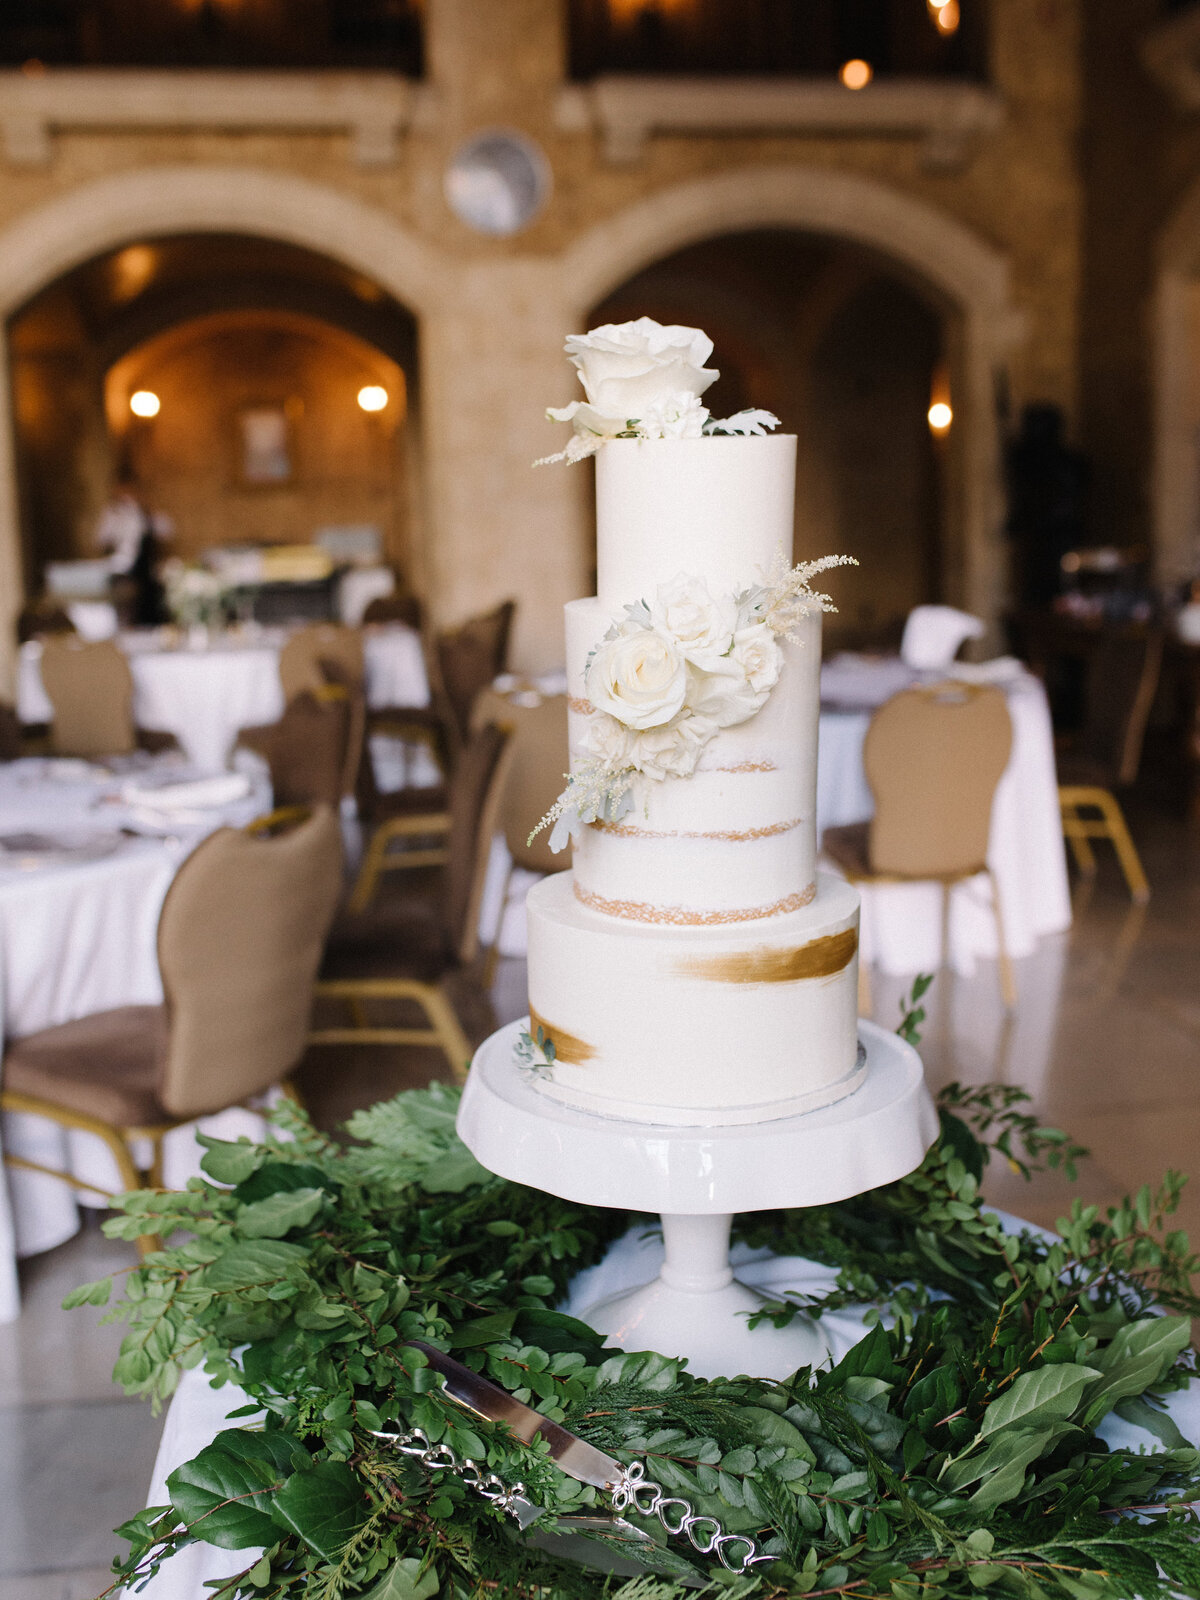 Banff Wedding Cake Ideas Simple White Naked Cake